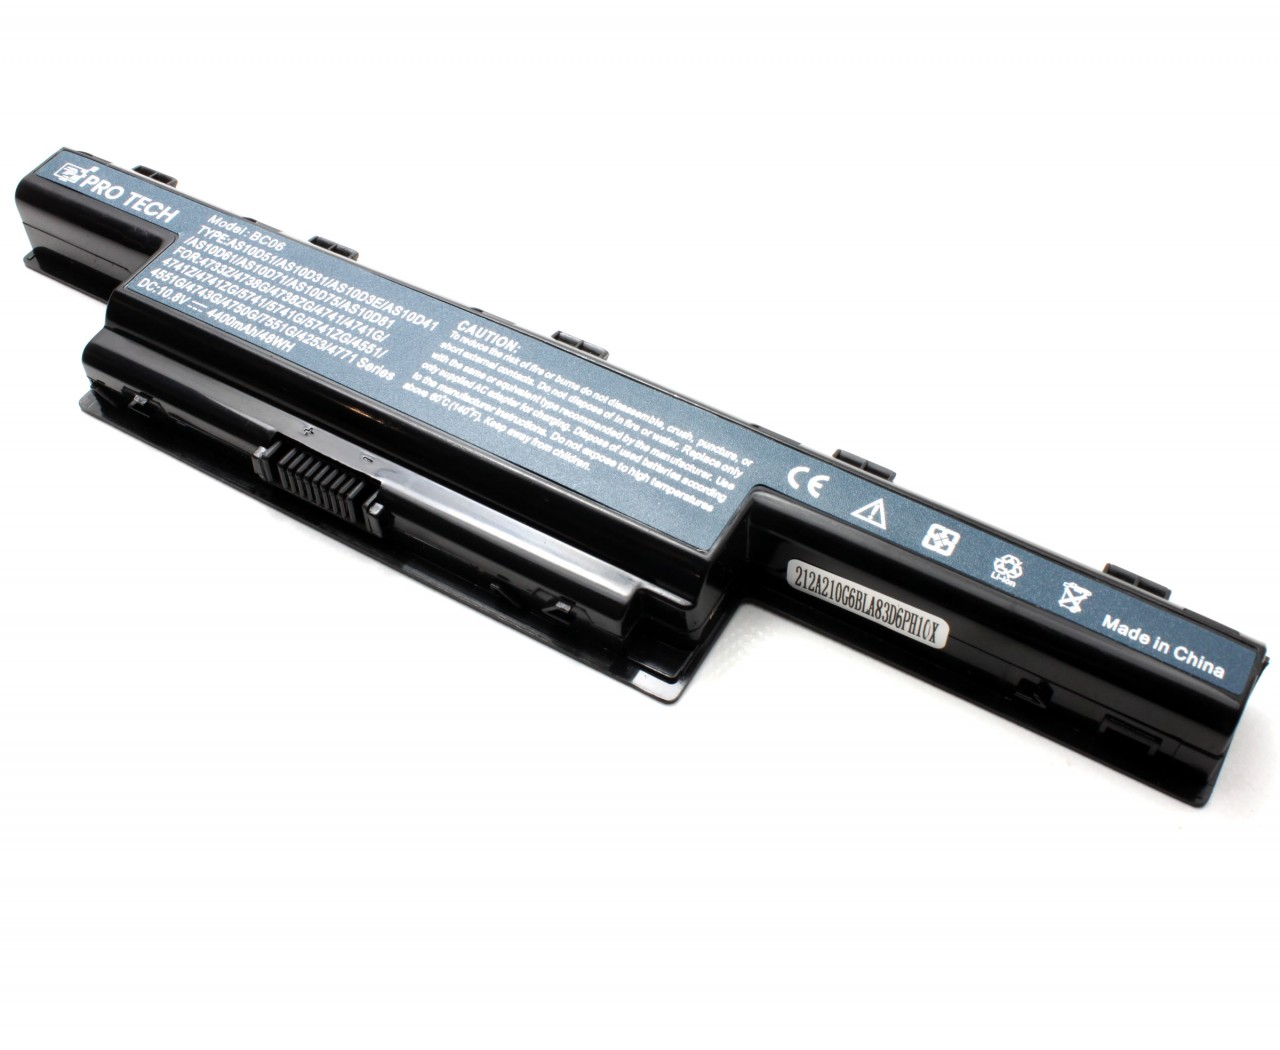 Baterie Packard Bell EasyNote LM86 6 celule imagine powerlaptop.ro 2021